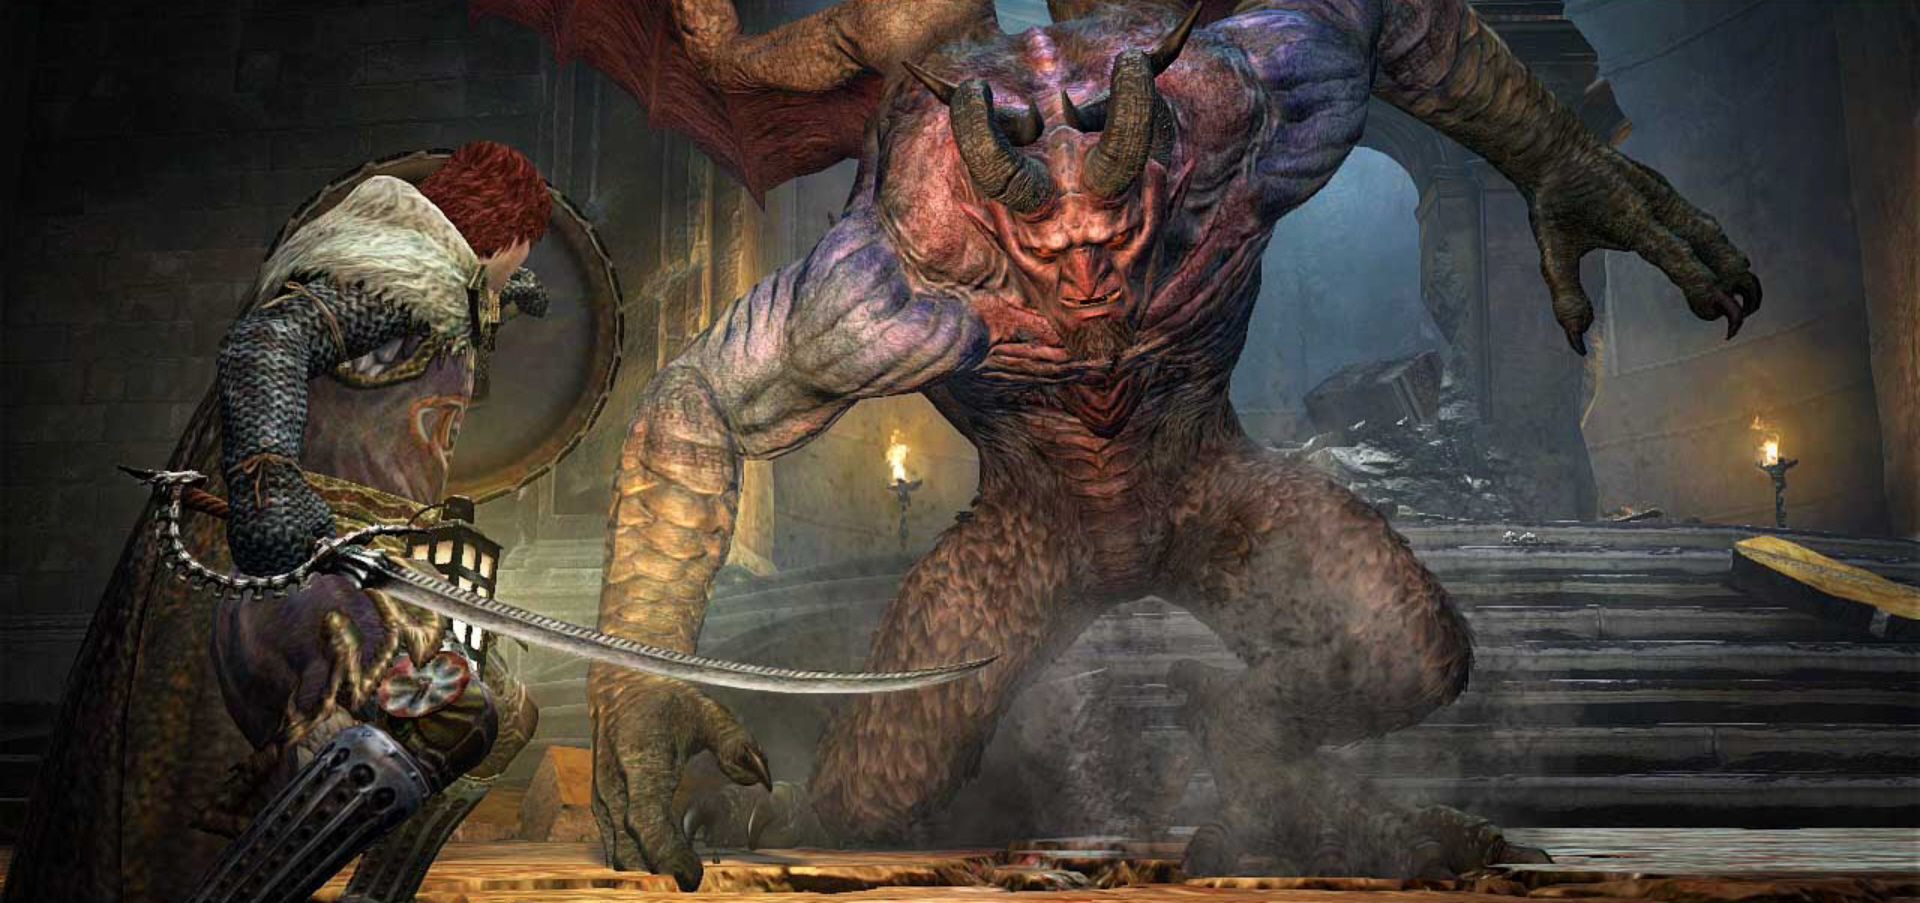 Dragon?s Dogma: Dark Arisen Expansion Release Date Is April 23 2013